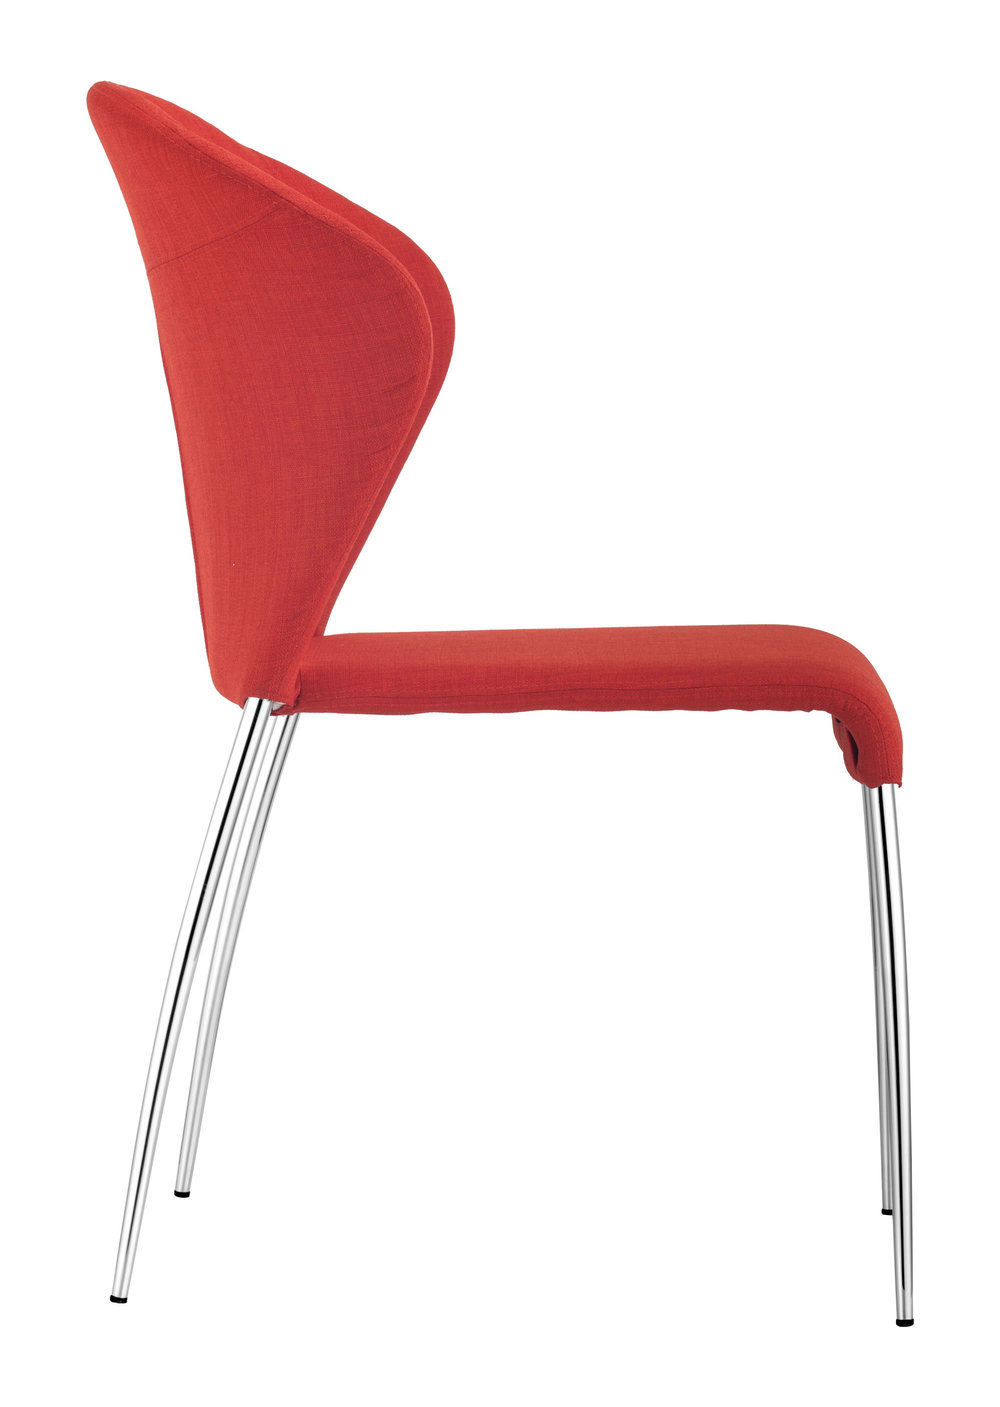 ZUO MODERN CONTEMPORARY, INC - Oulu Dining Chair - Set of 4 - Tangerine